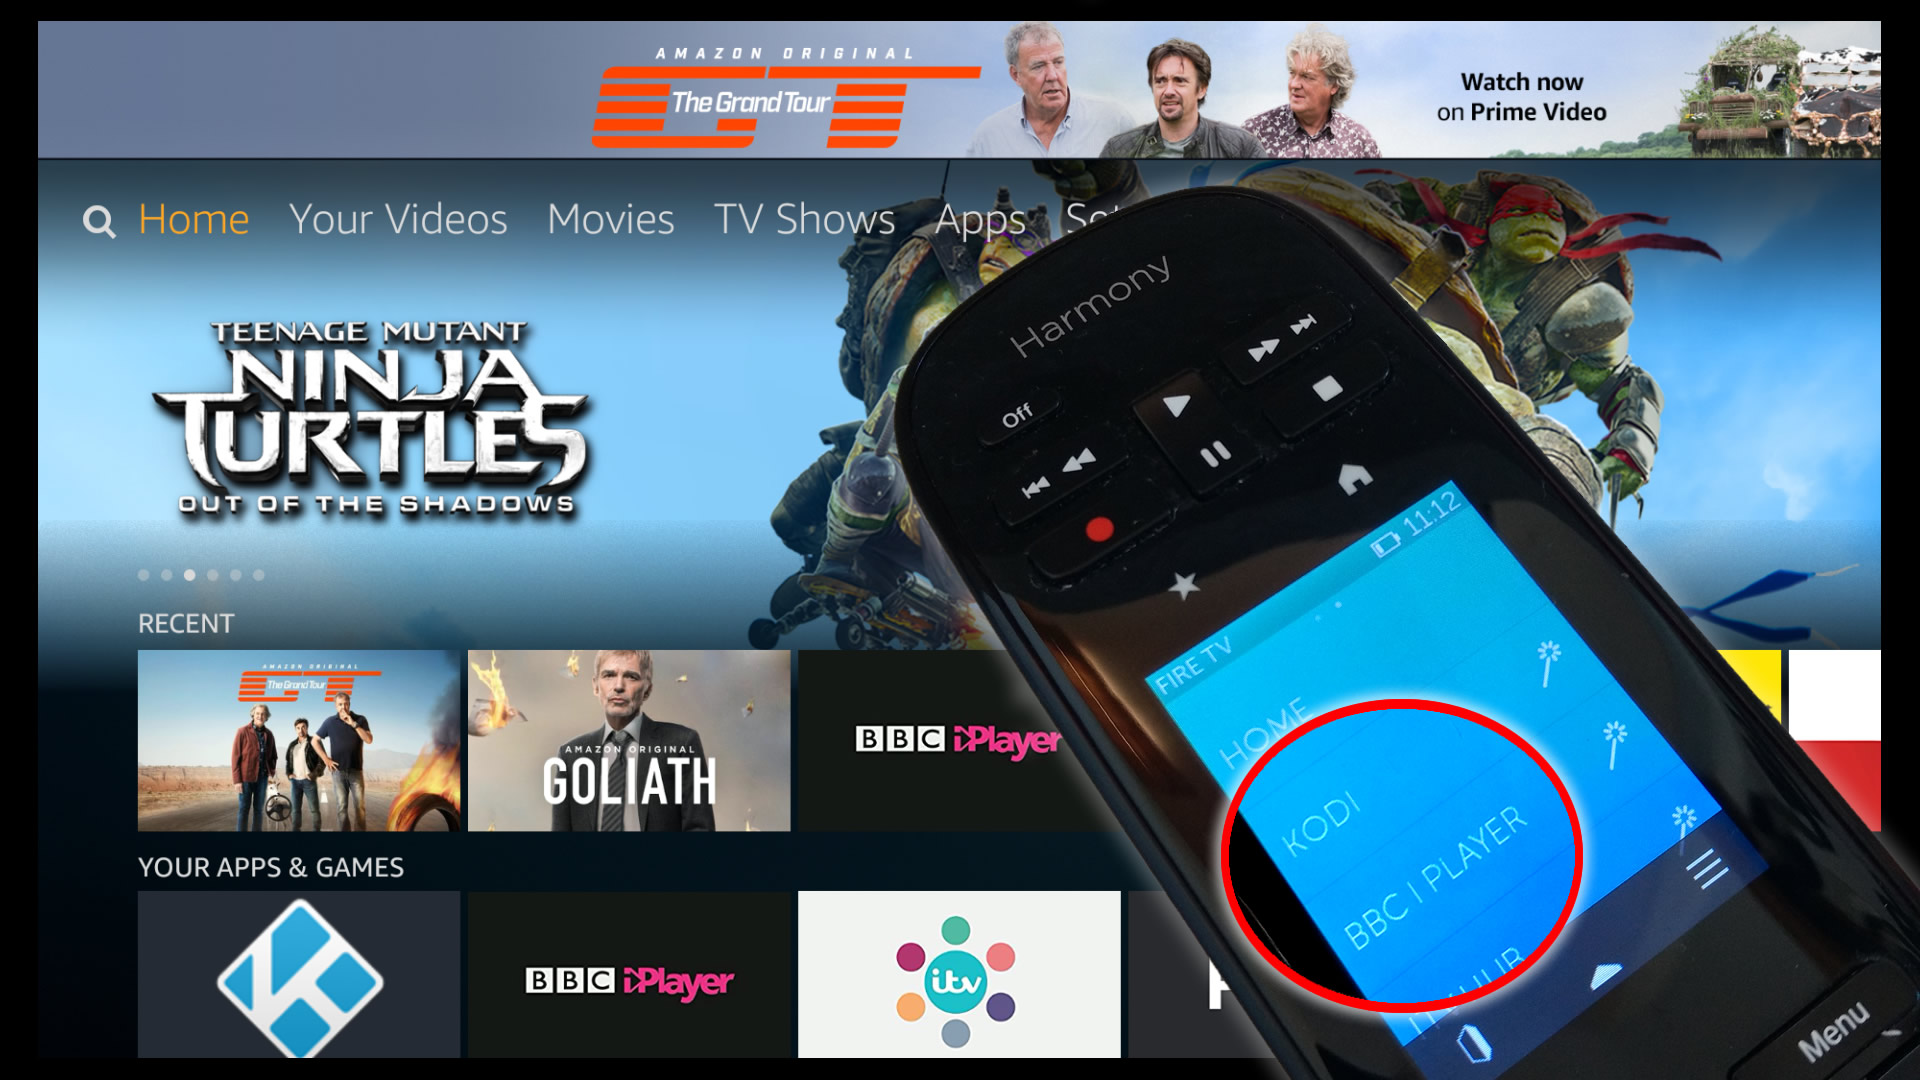 How to launch apps on Fire TV with Harmony Remote - Improdia